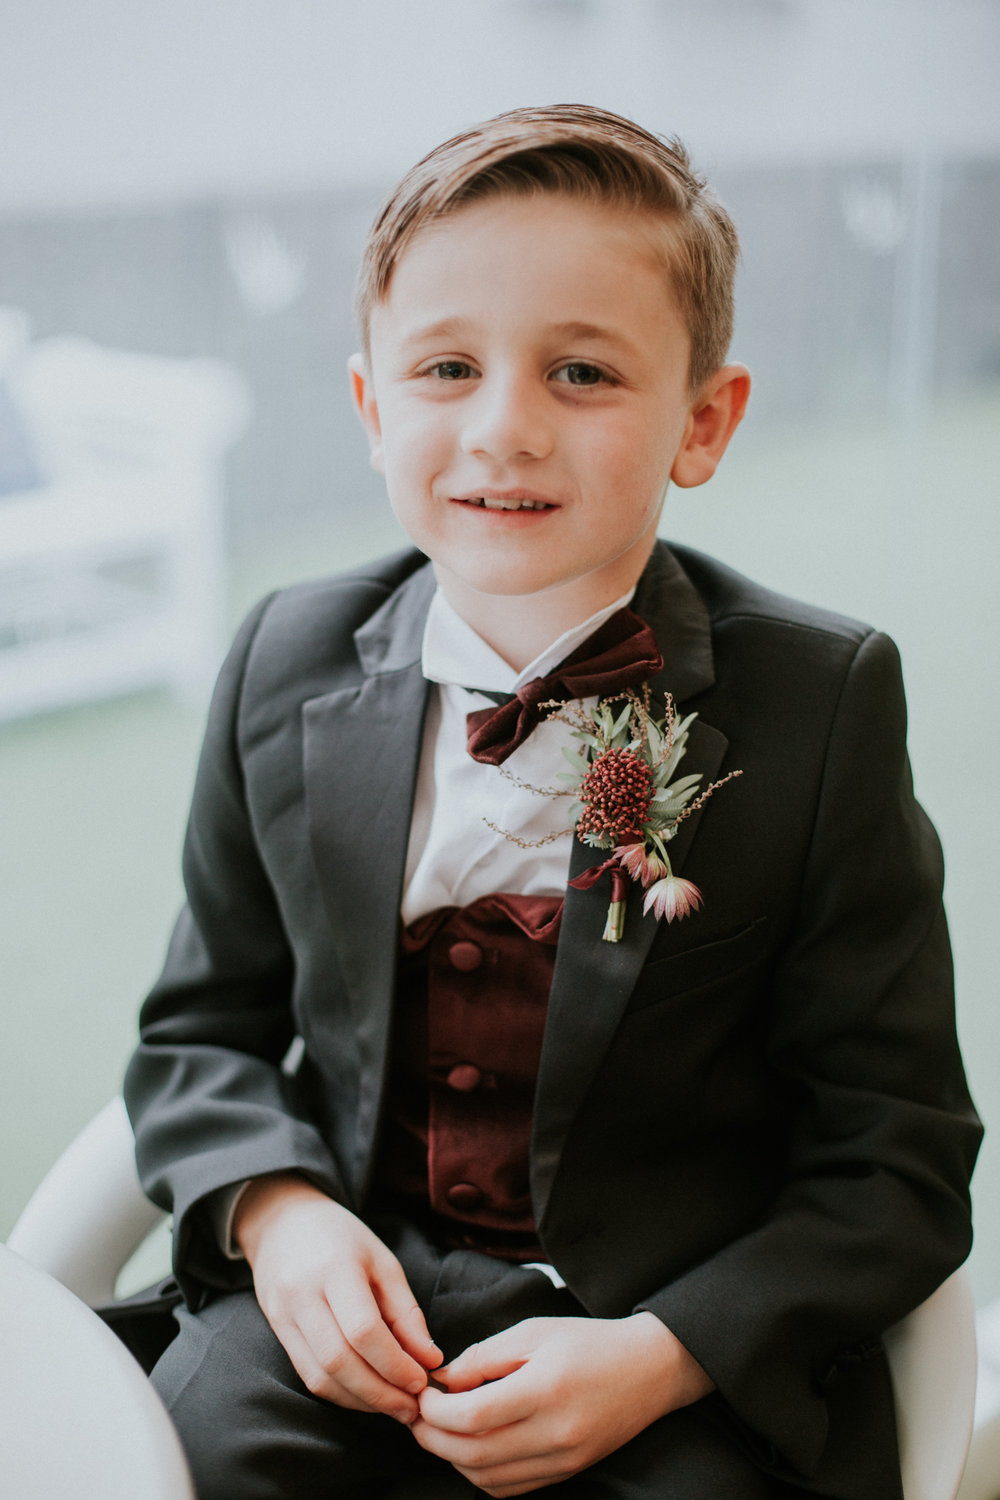 The portrait of the oldest son of the couple